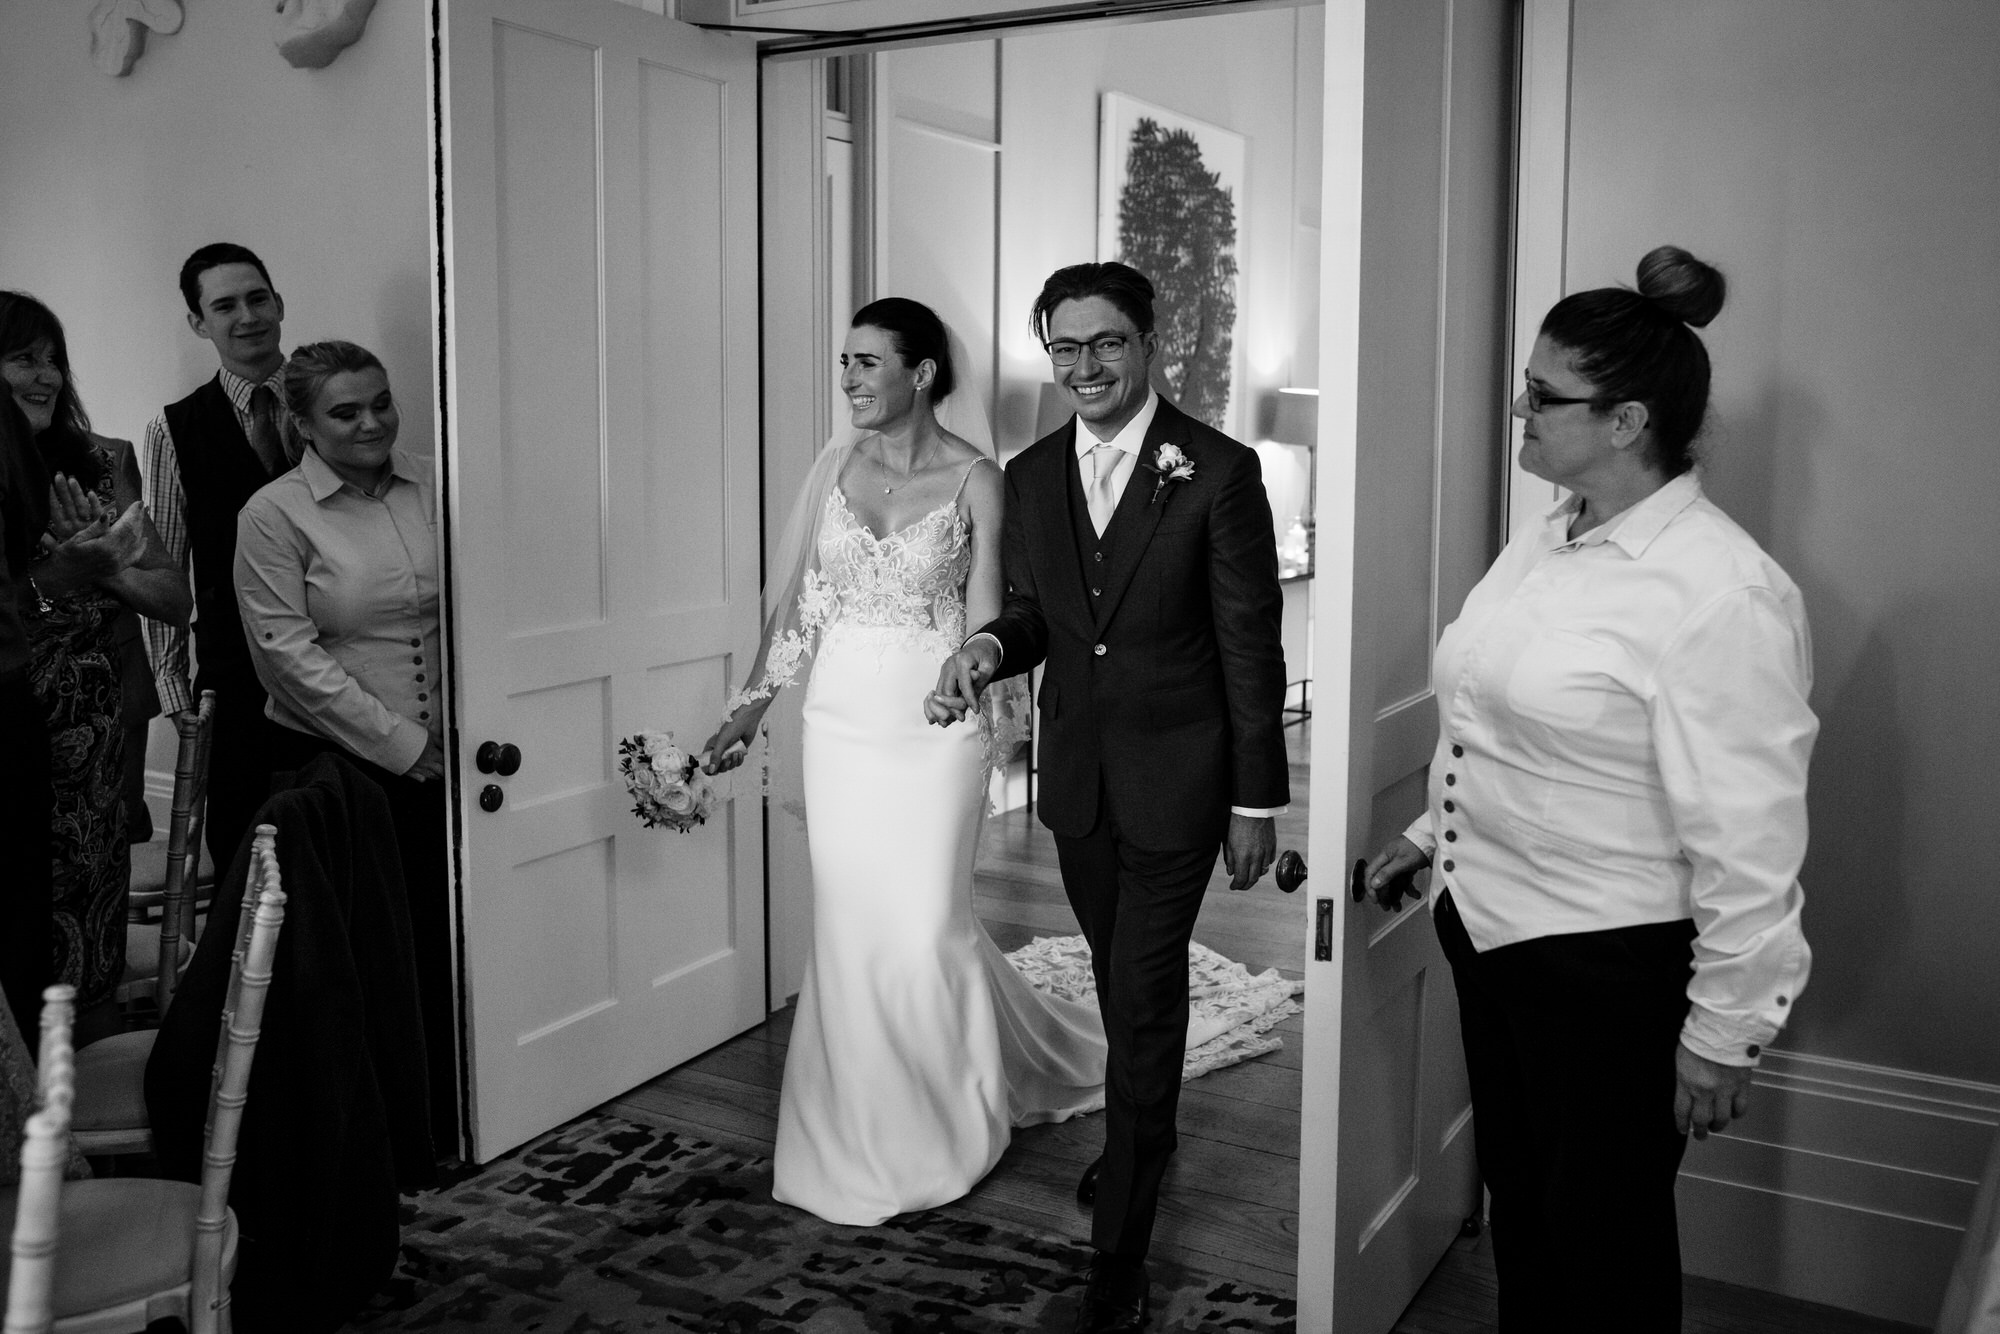 Bride and groom enter the room